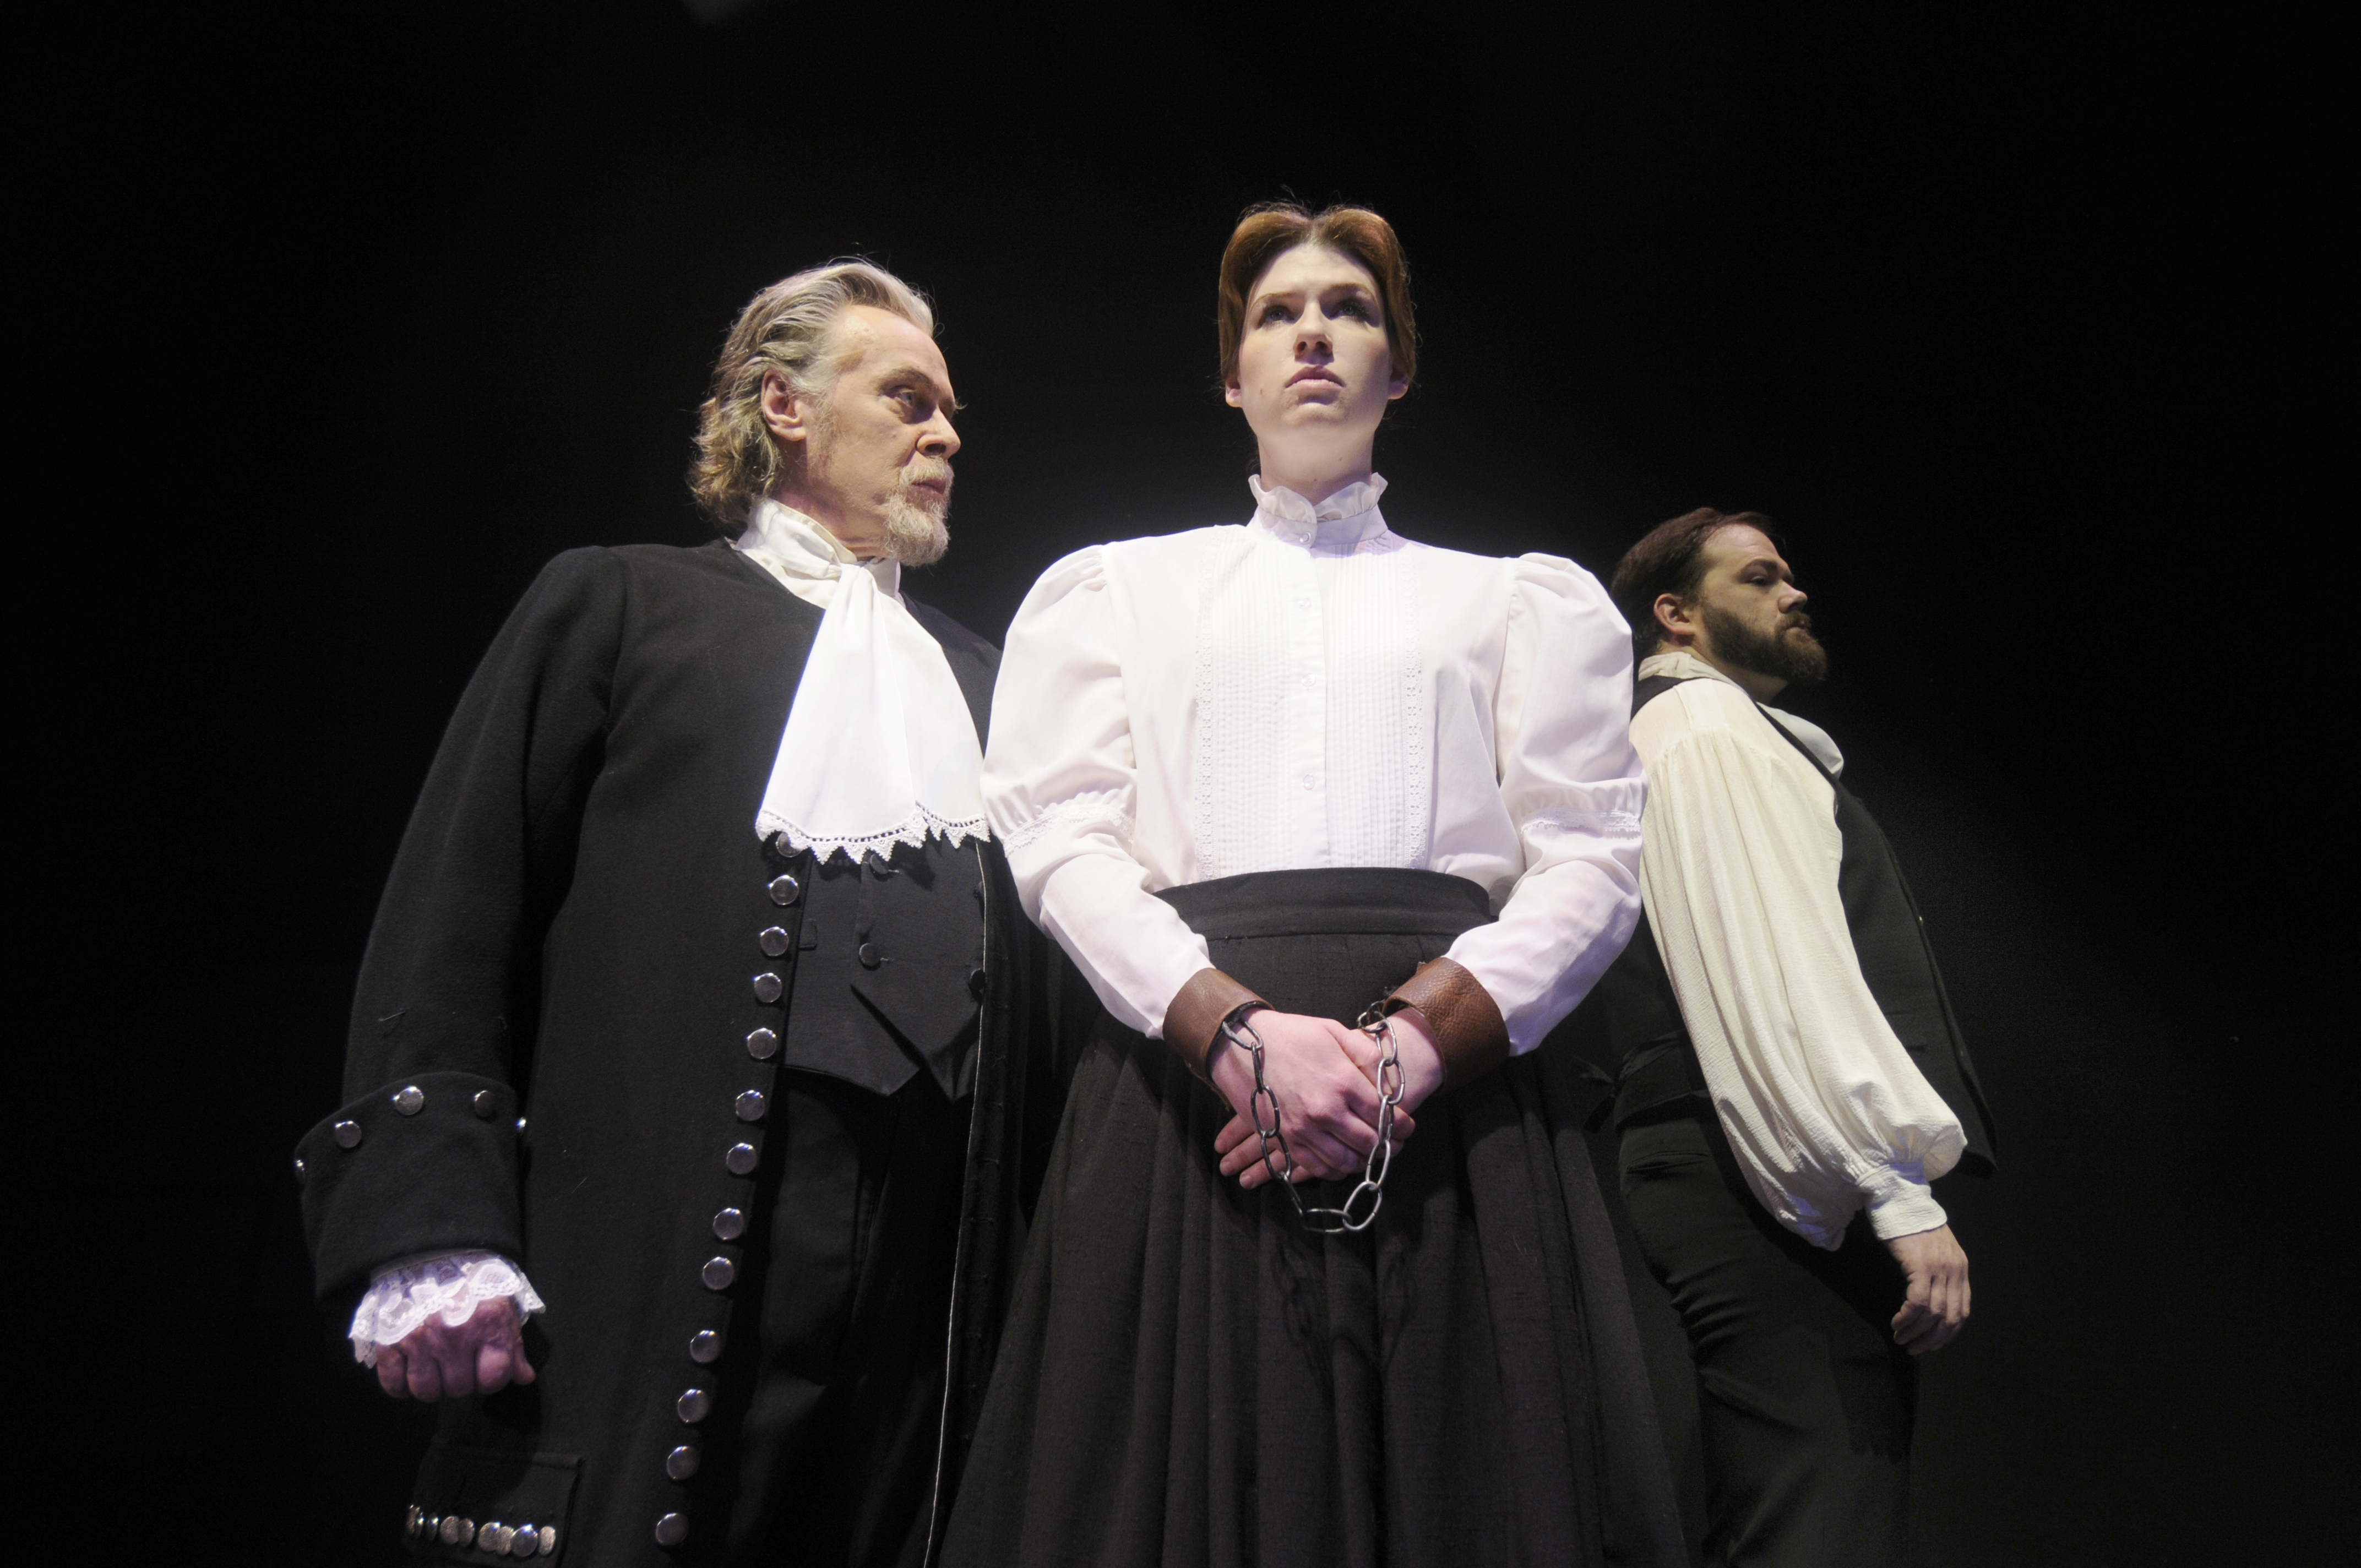 Director, actors breathe life into THE CRUCIBLE